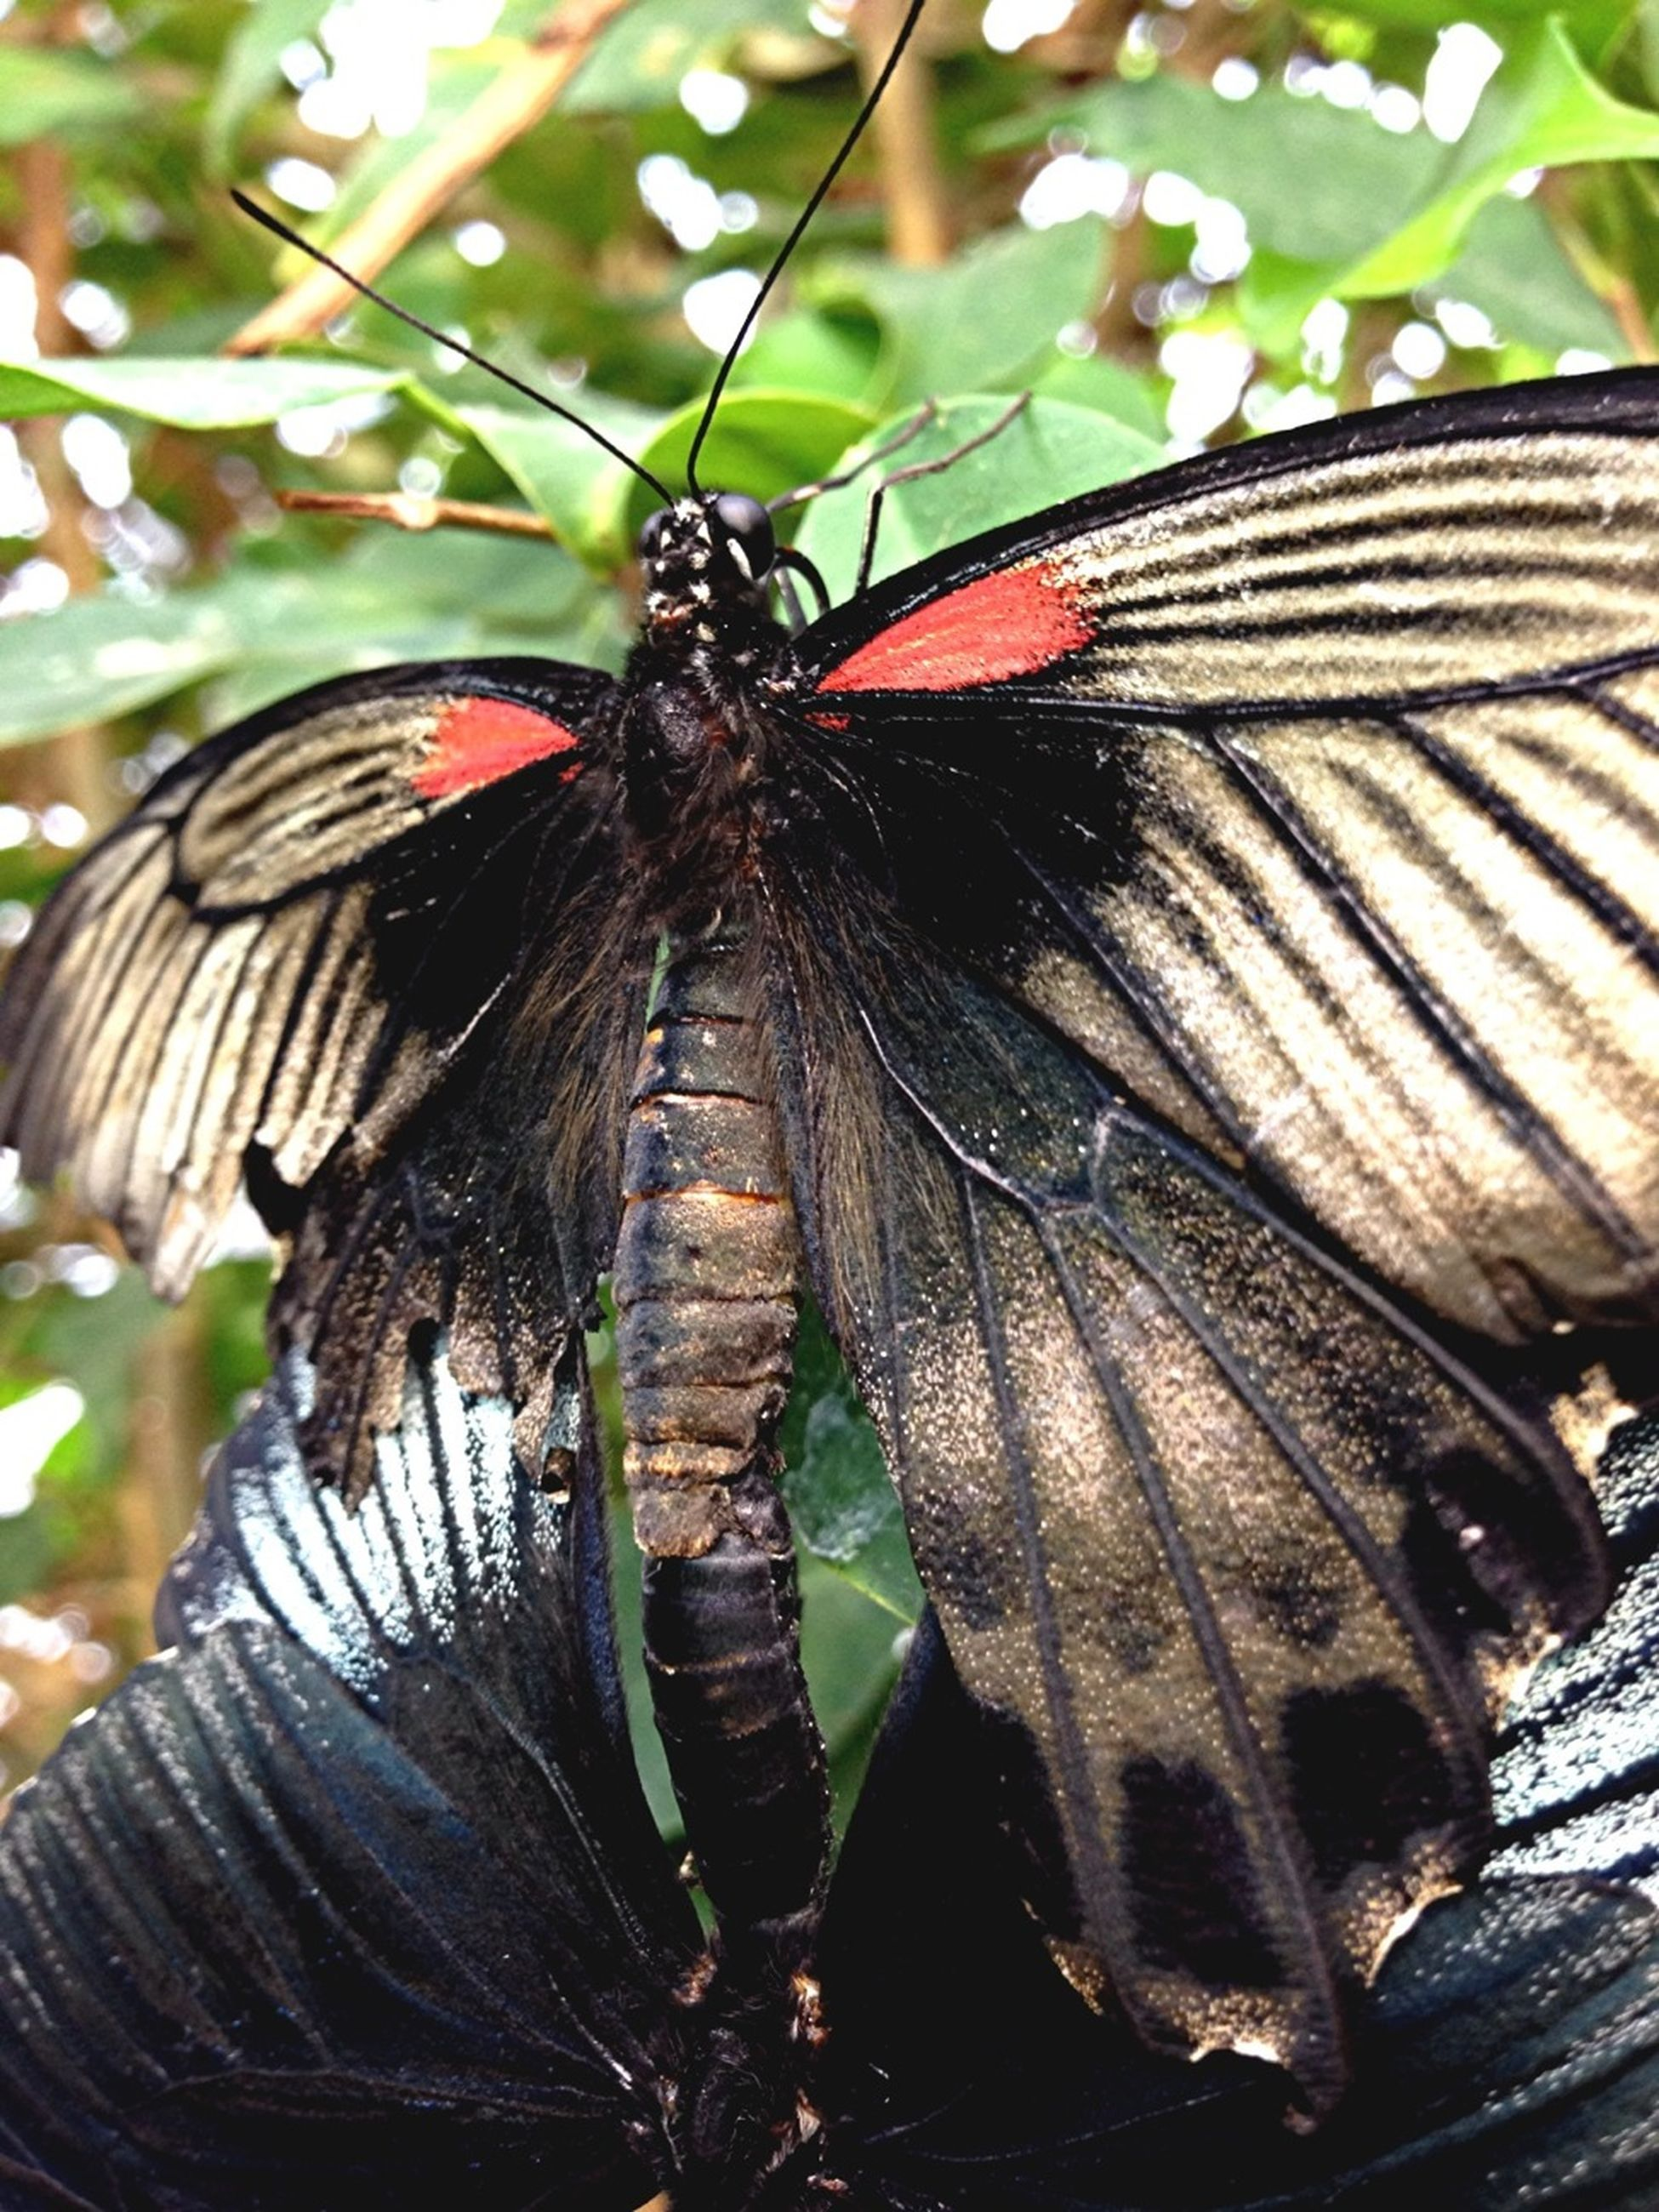 one animal, animal themes, animals in the wild, insect, wildlife, butterfly - insect, animal wing, butterfly, close-up, focus on foreground, animal markings, natural pattern, nature, beauty in nature, flower, perching, leaf, growth, outdoors, day